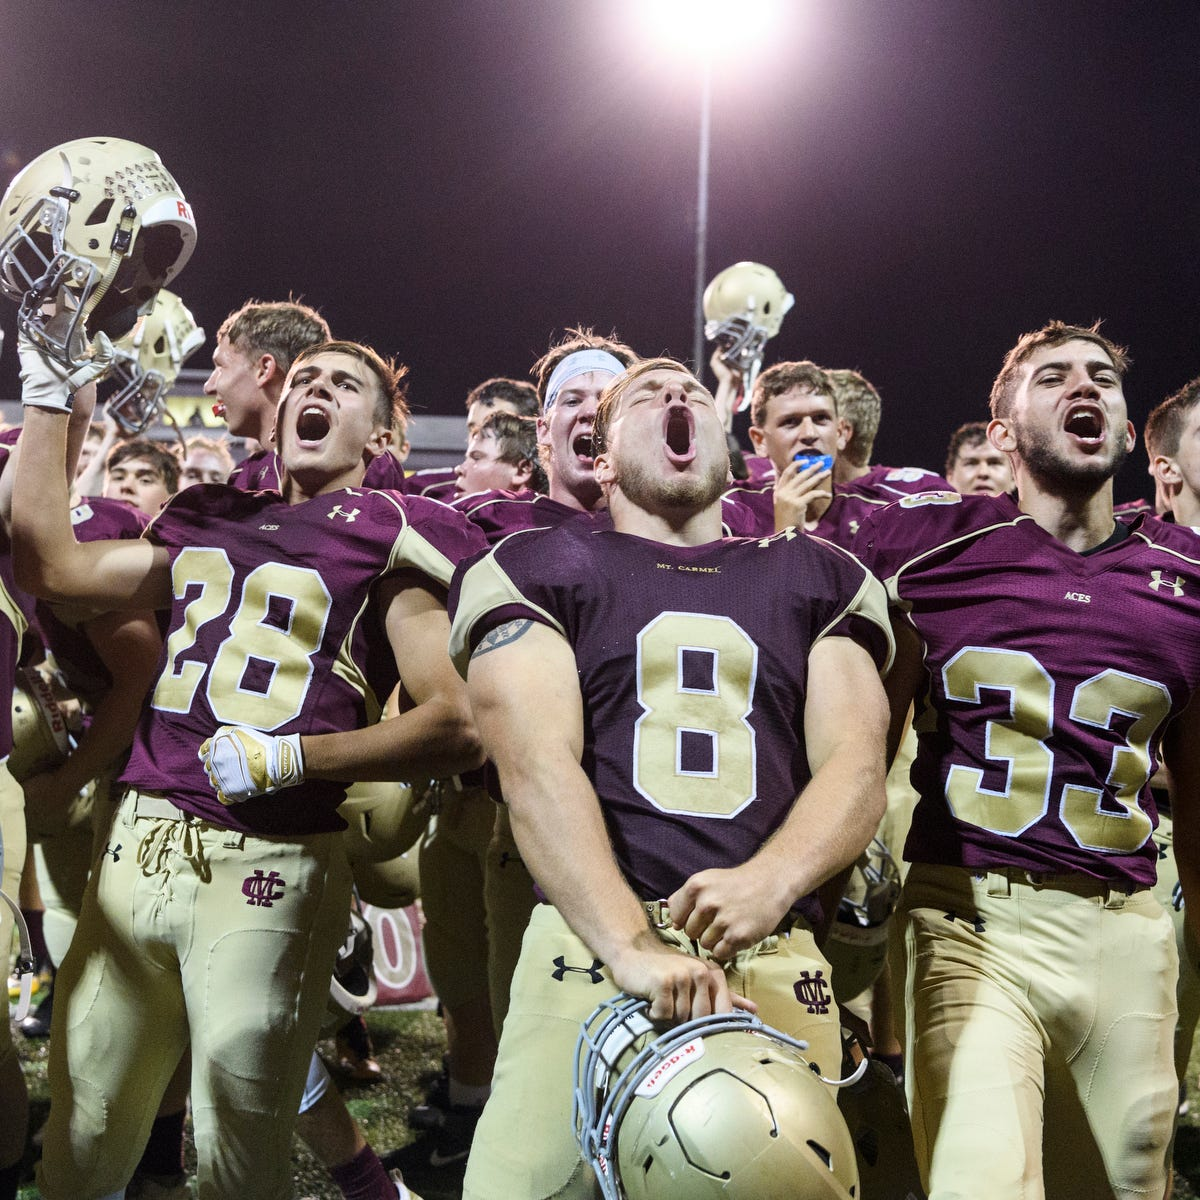 Mount Carmel football has a storied tradition, but changes may be forthcoming | Engelhardt